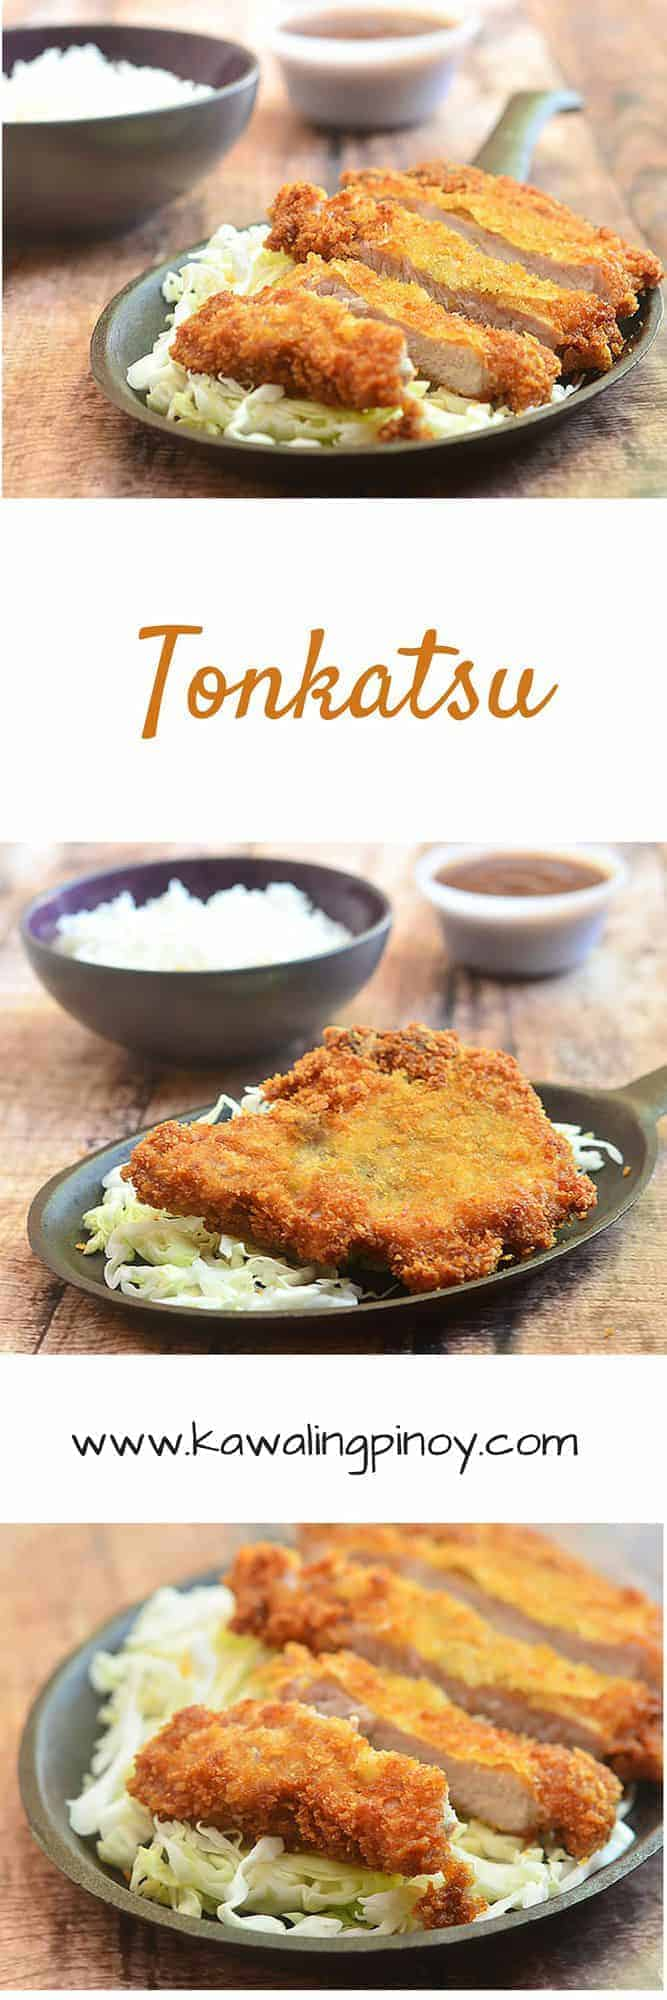 Tonkatsu is a type of Japanese dish where in cutlets are breaded in Panko bread crumbs and then deep-fried until golden and crisp; often served with shredded cabbage and tonkatsu sauce